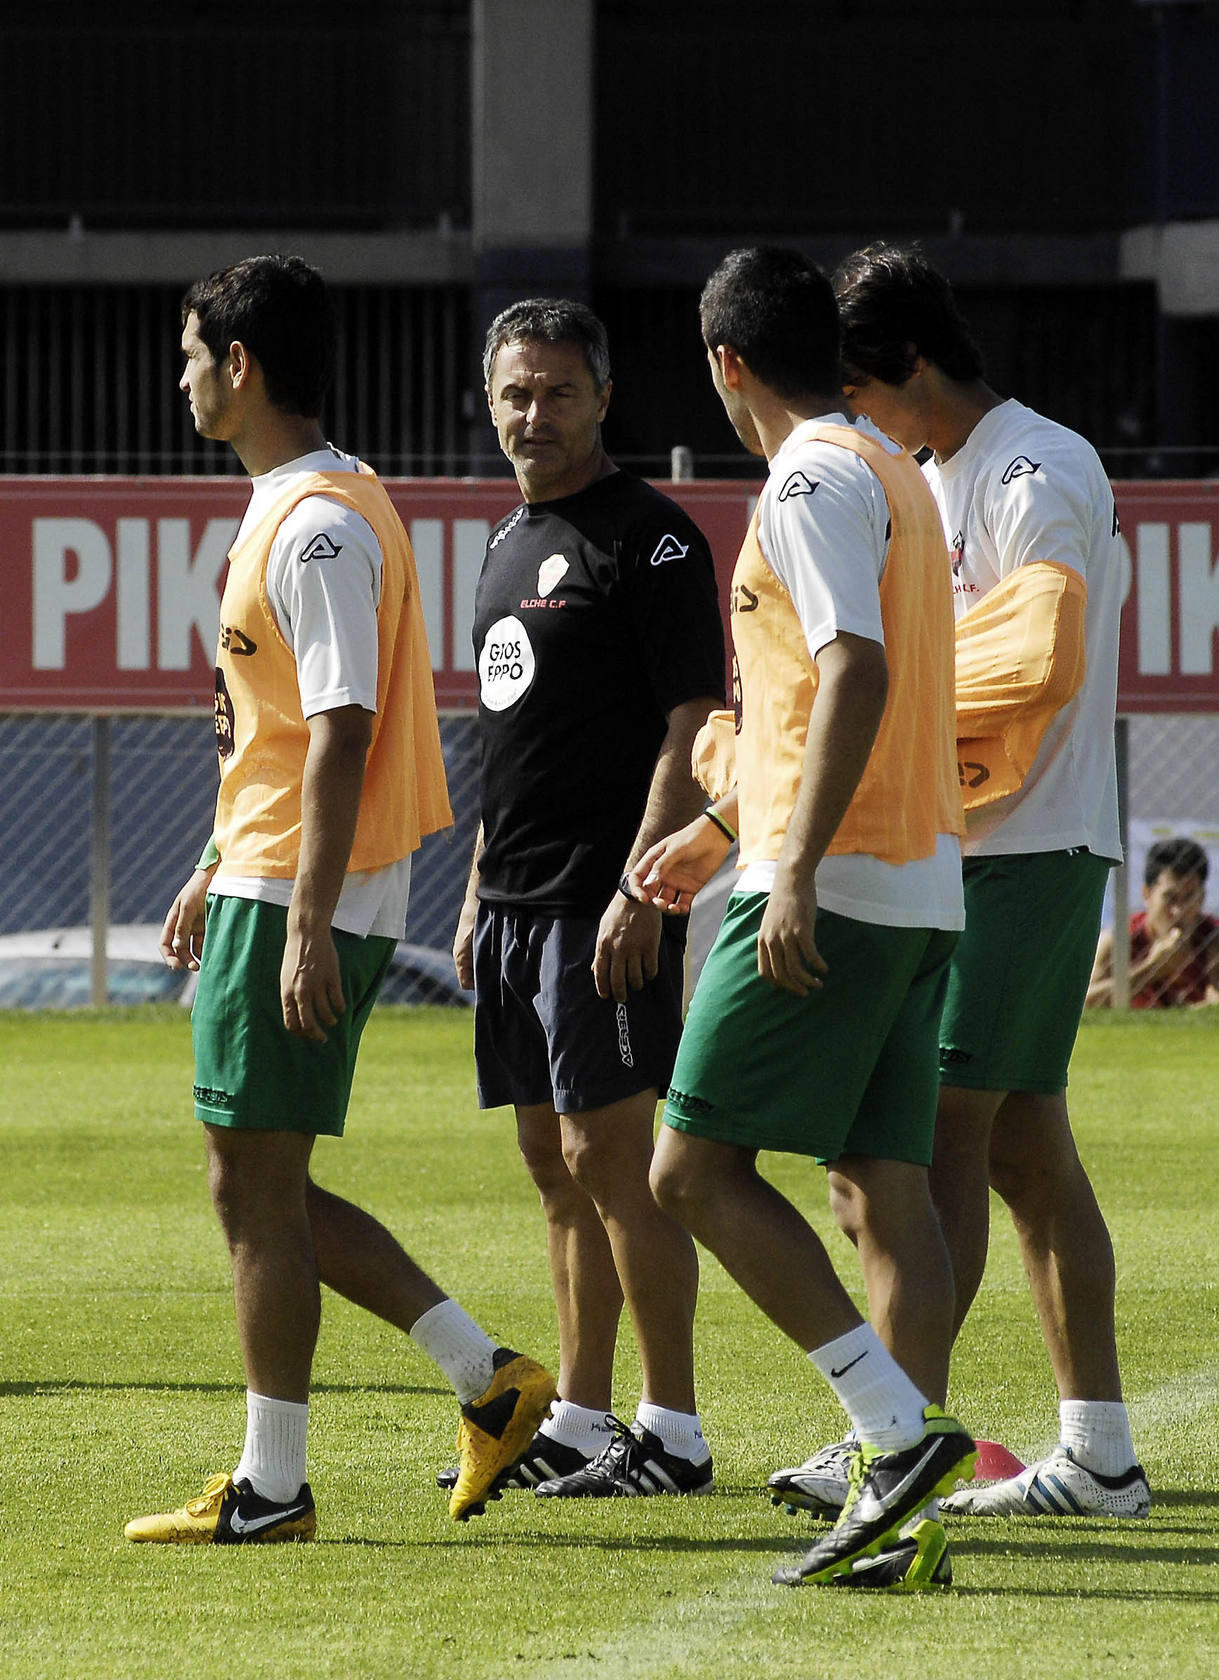 Entrenamiento del Elche en el campo anexo al Mart&iacute;nez Valero